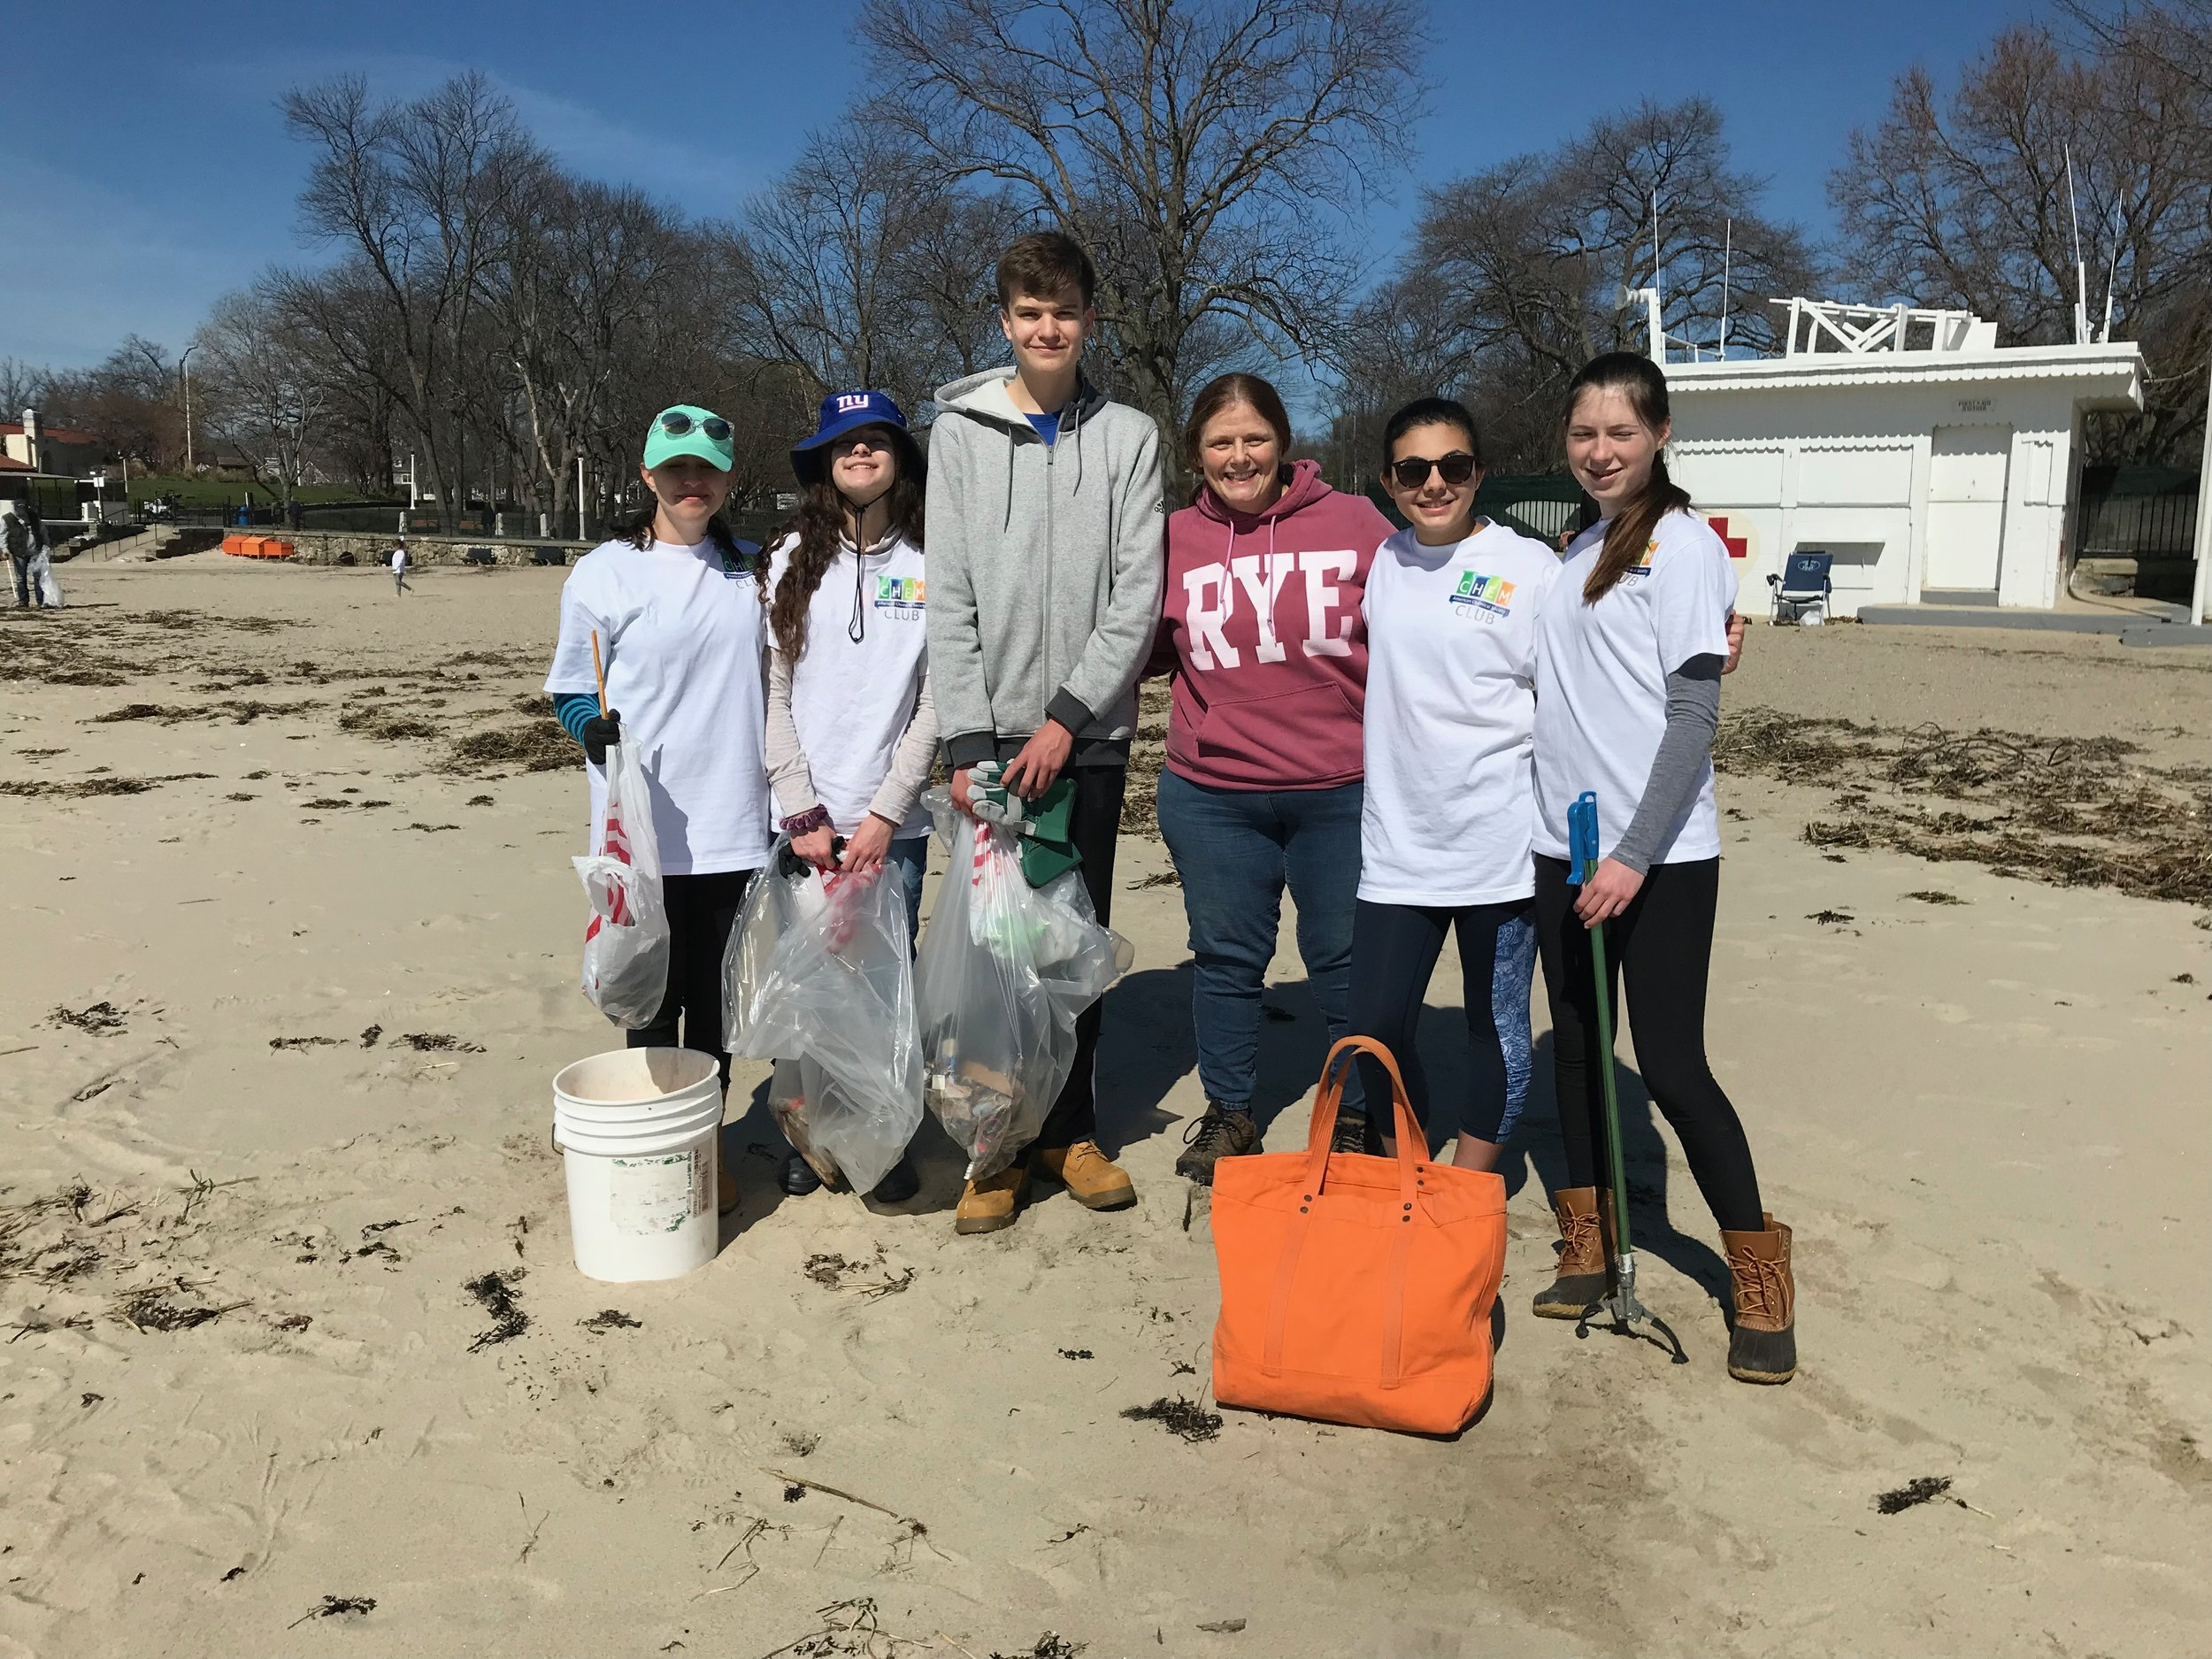 Watch a video about the plastic waste that litters Rye's beaches - Rye Sustainability, Rye students and Rye Town Park members at a recent Rye beach cleanup.